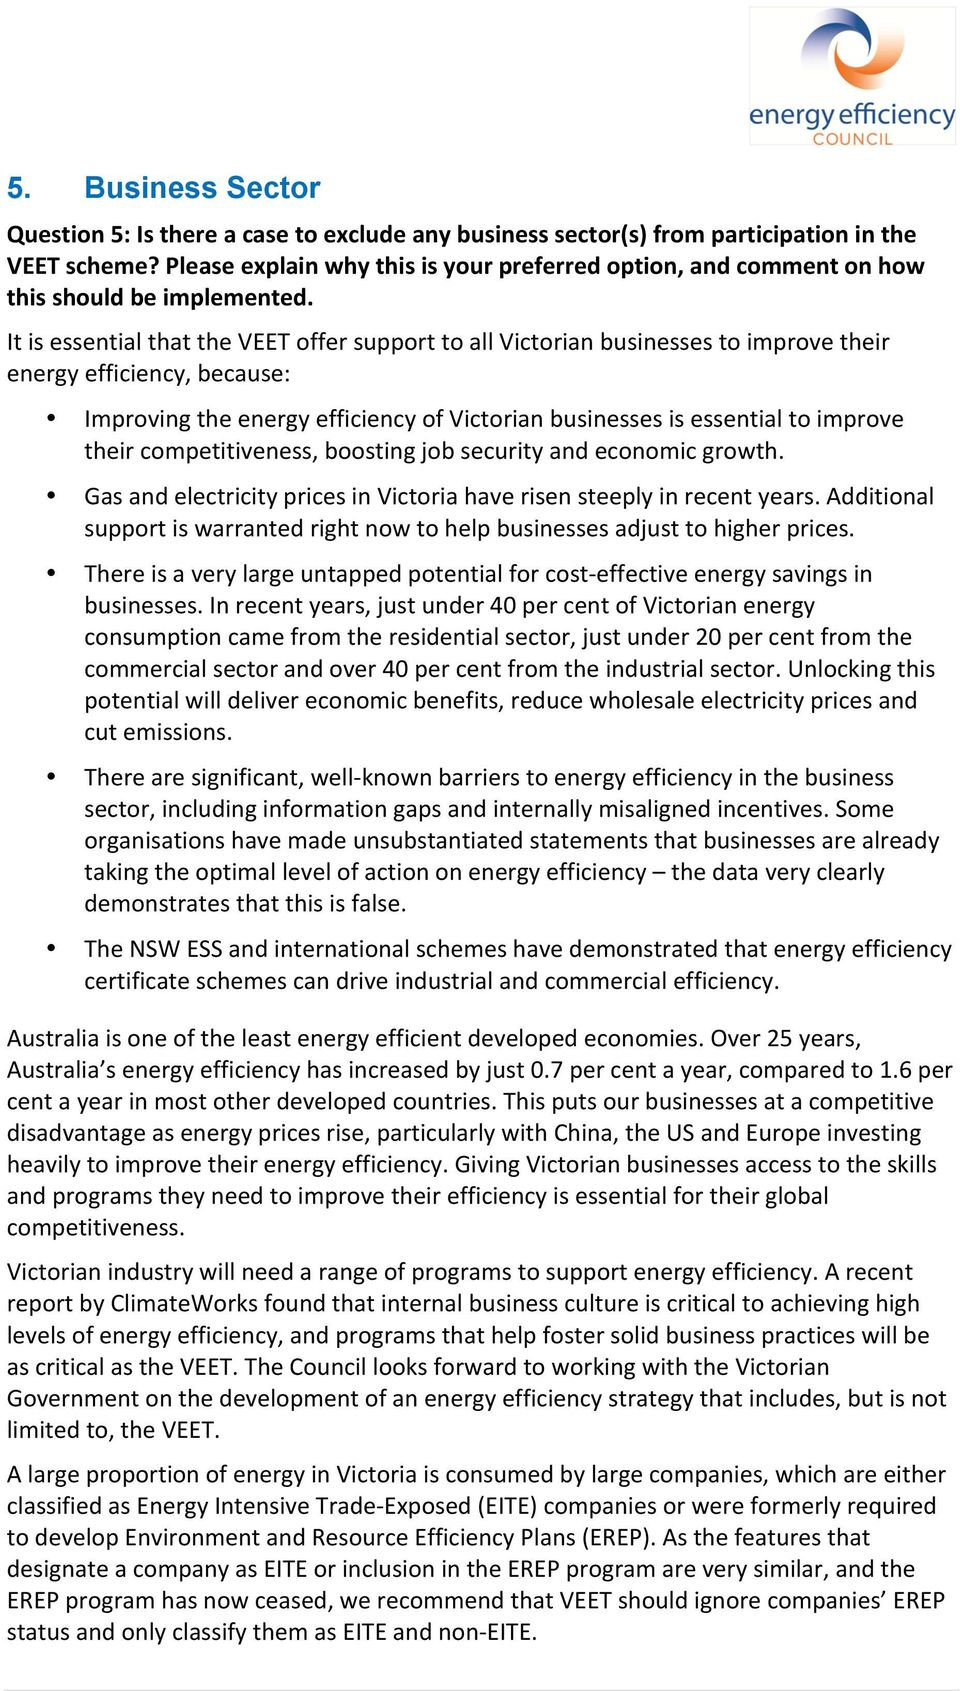 It is essential that the VEET offer support to all Victorian businesses to improve their energy efficiency, because: Improving the energy efficiency of Victorian businesses is essential to improve